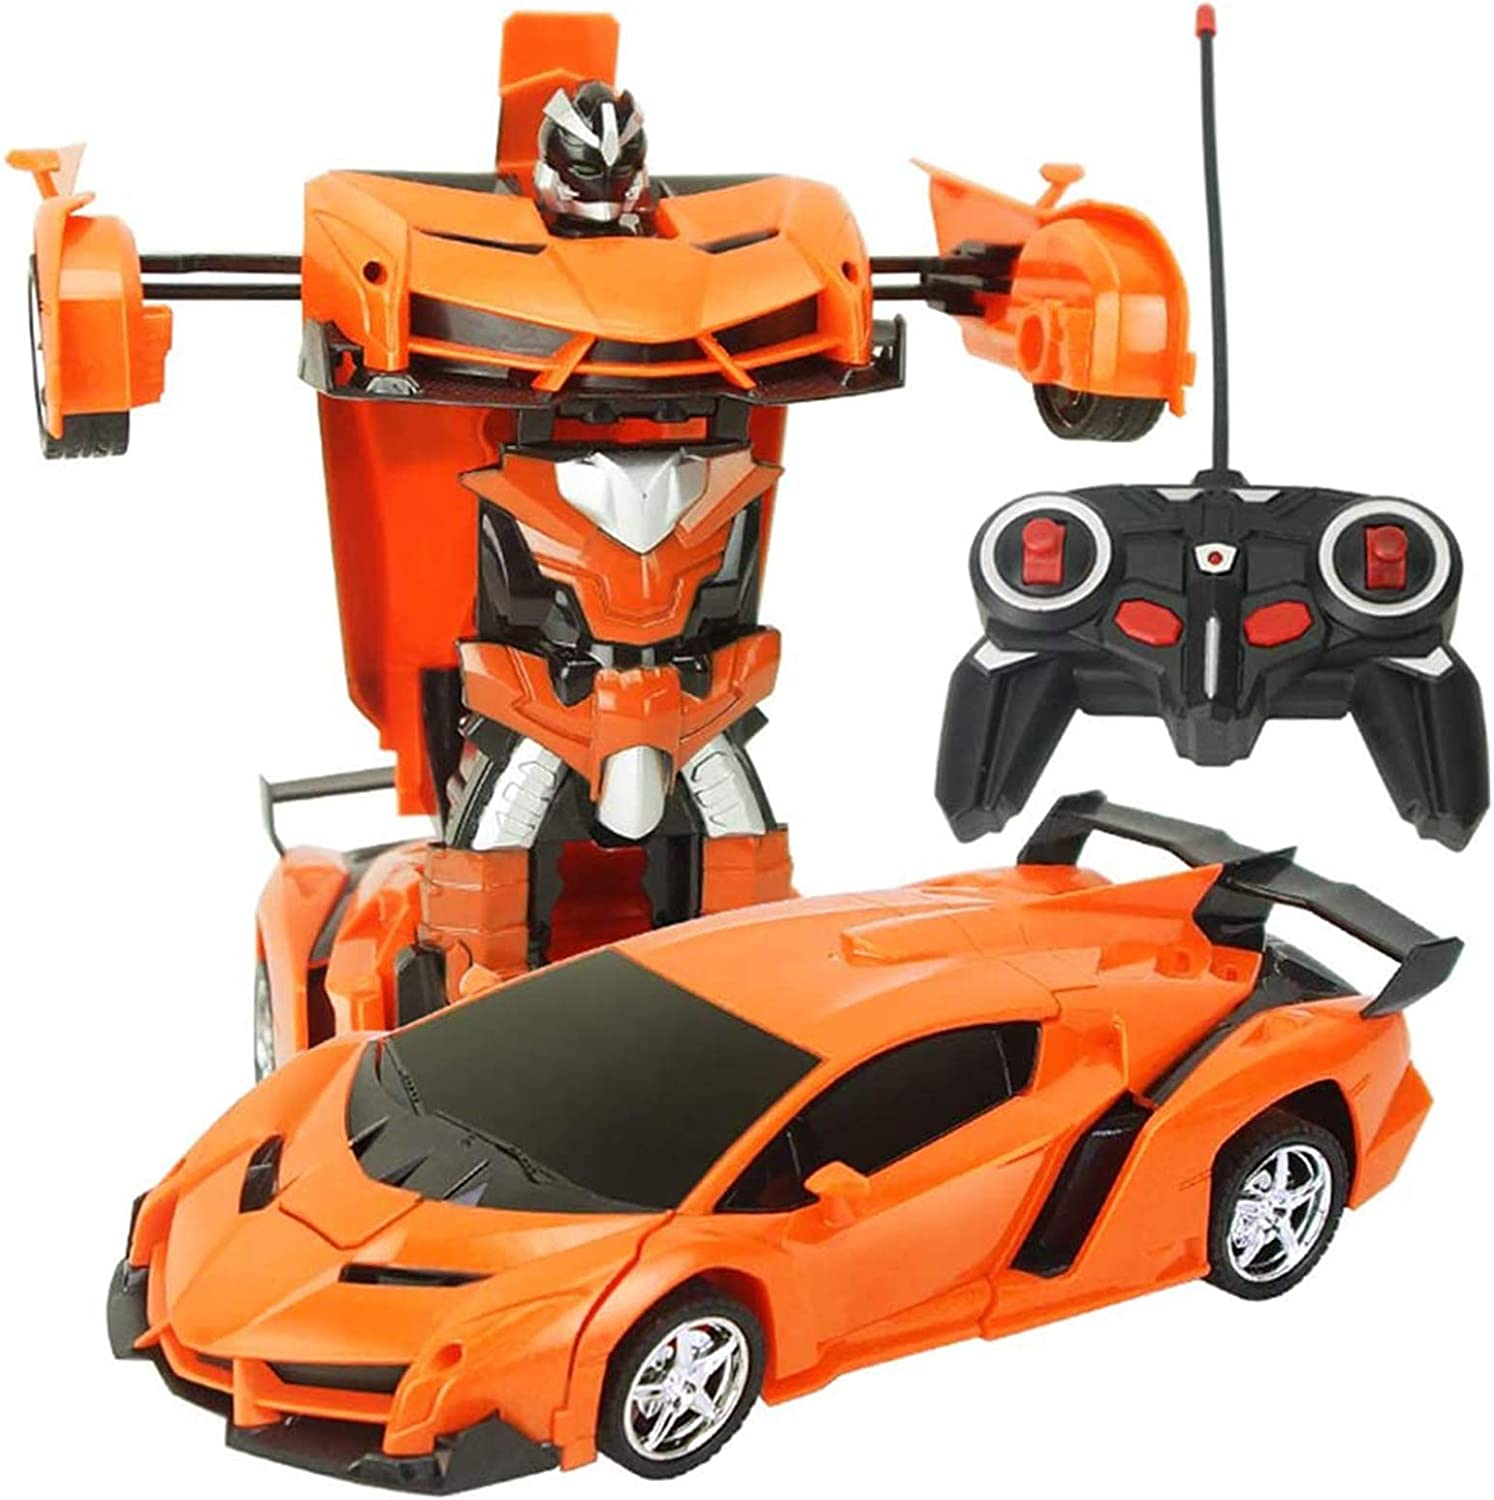 Deformation Robot Toy 4 in 1 Deformation Robot Toys for BoysSuper Robot for 3 4 5 6 Years Old Kids Gift fo Boy Toy Gift Boys/& Girls STEM Robot Educational Learning Toy